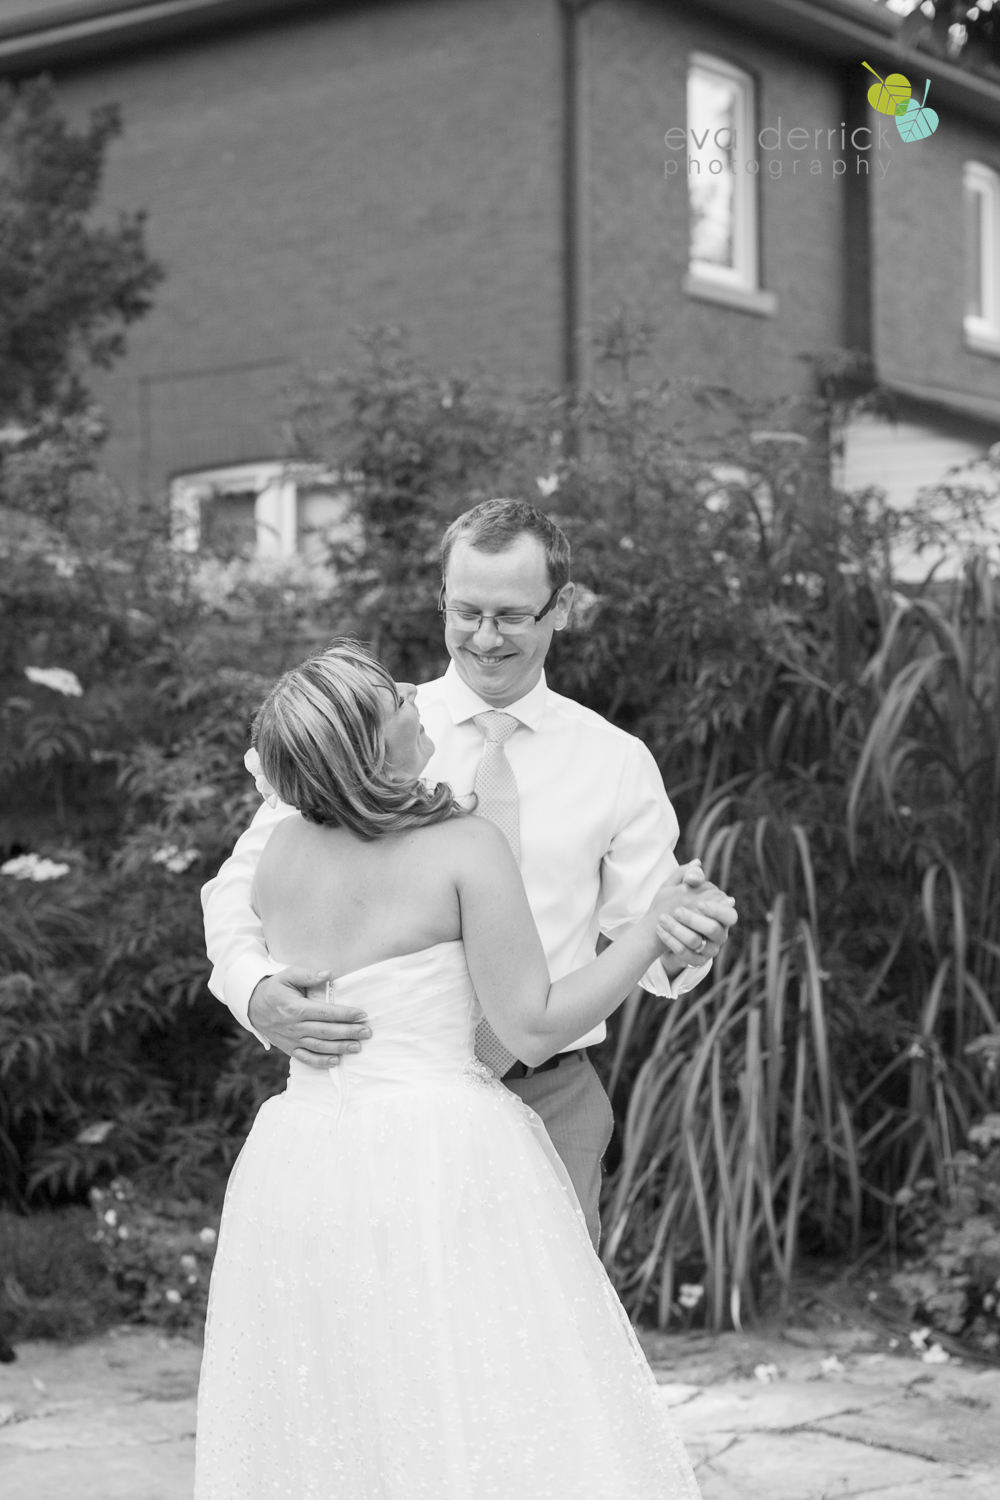 toronto-wedding-photographer-toronto-weddings-GTA-backyard-weddings-eva-derrick-photography-0646.jpg